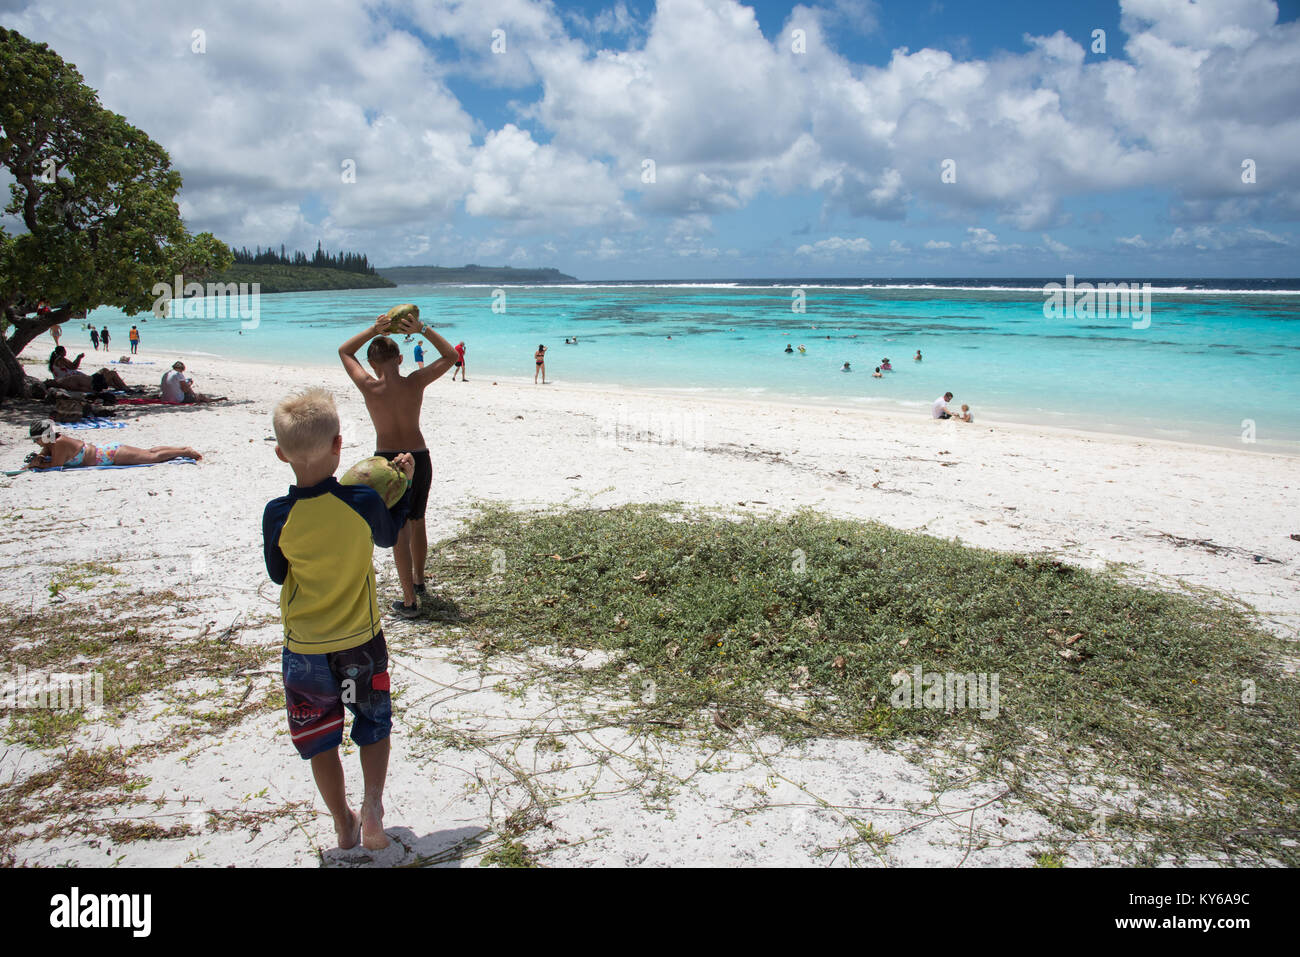 TADINE,MARE,NEW CALEDONIA-DECEMBER 3,2016: Kids collecting coconuts and tourists swimming at Yejele Beach in Mare, - Stock Image